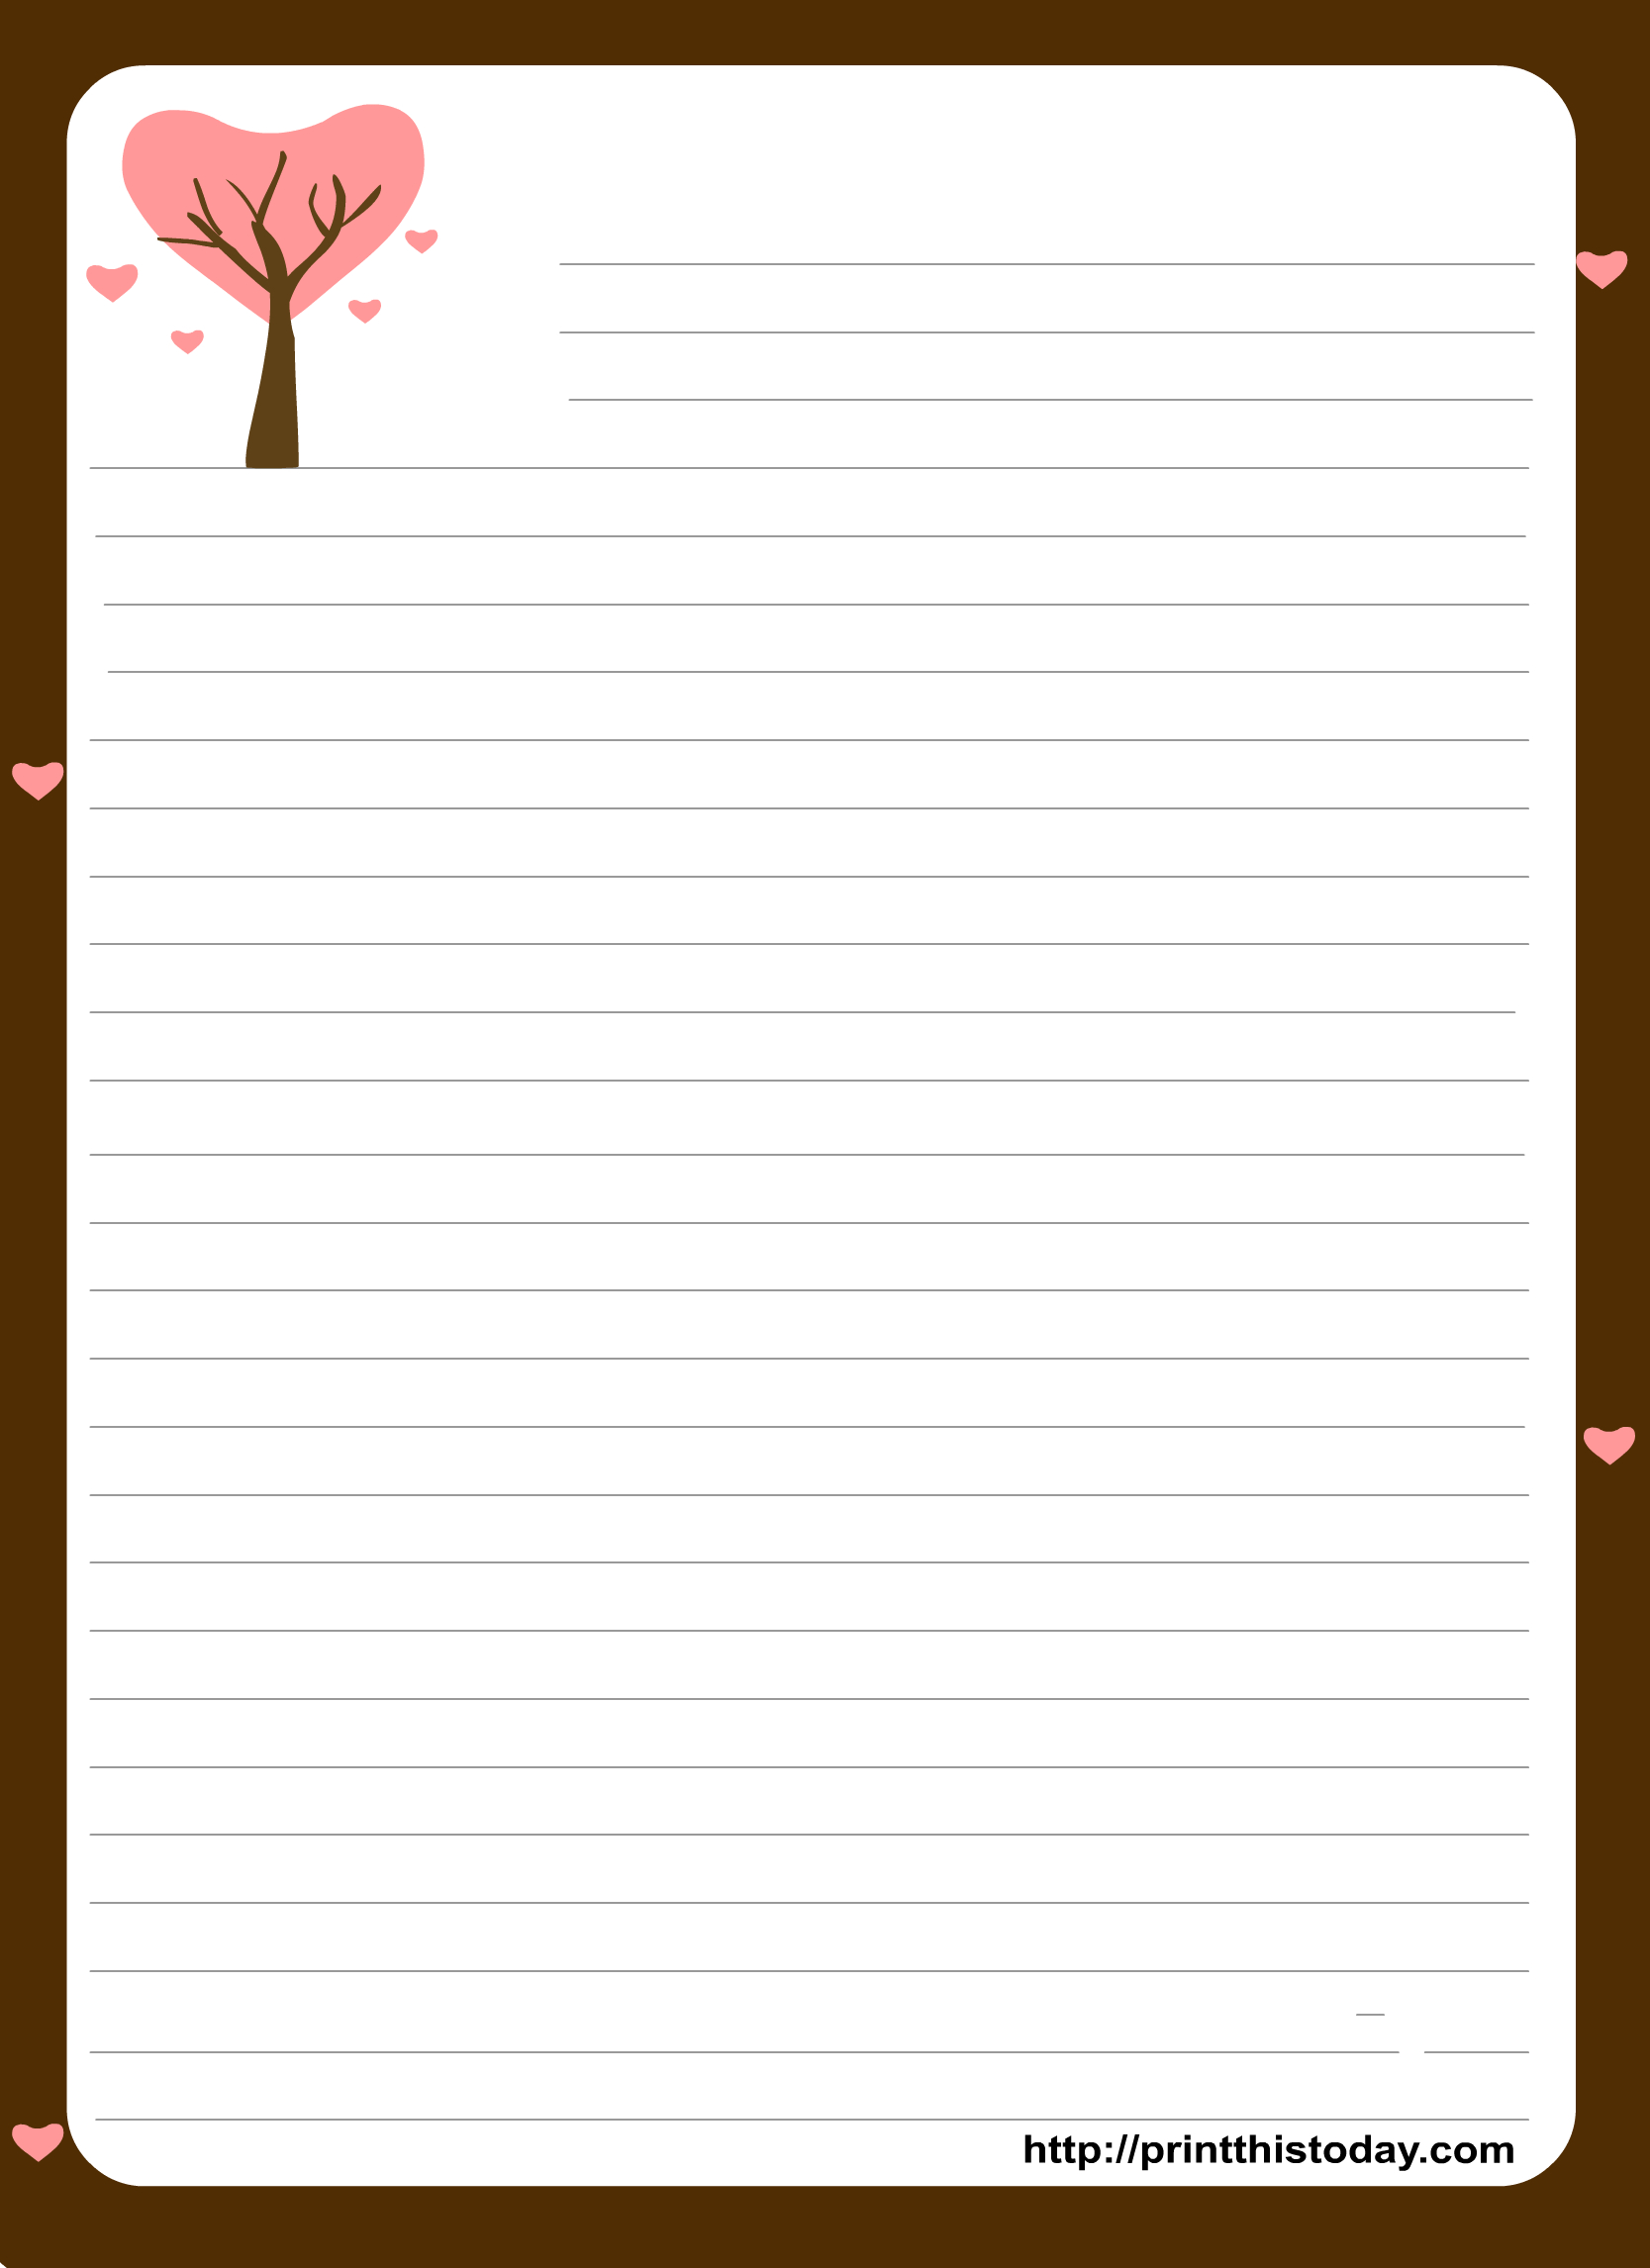 Free Printable Stationery Paper | Free Printable Stationary With - Free Printable Notebook Paper